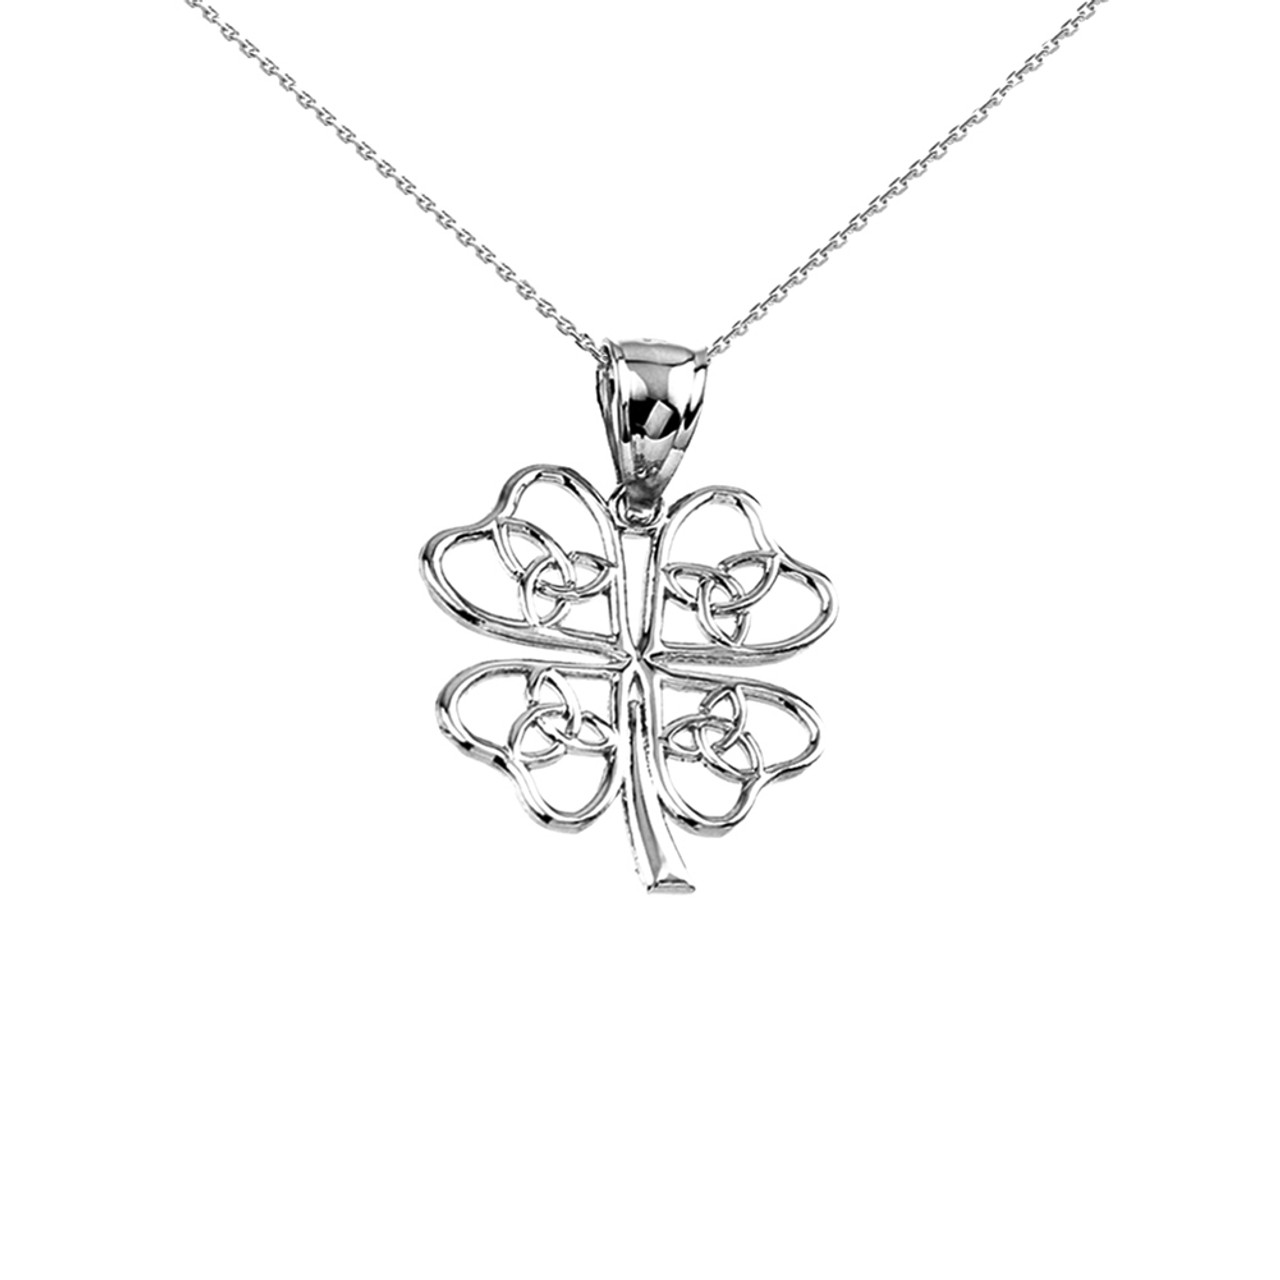 White gold celtic trinity knot clover pendant necklace aloadofball Image collections